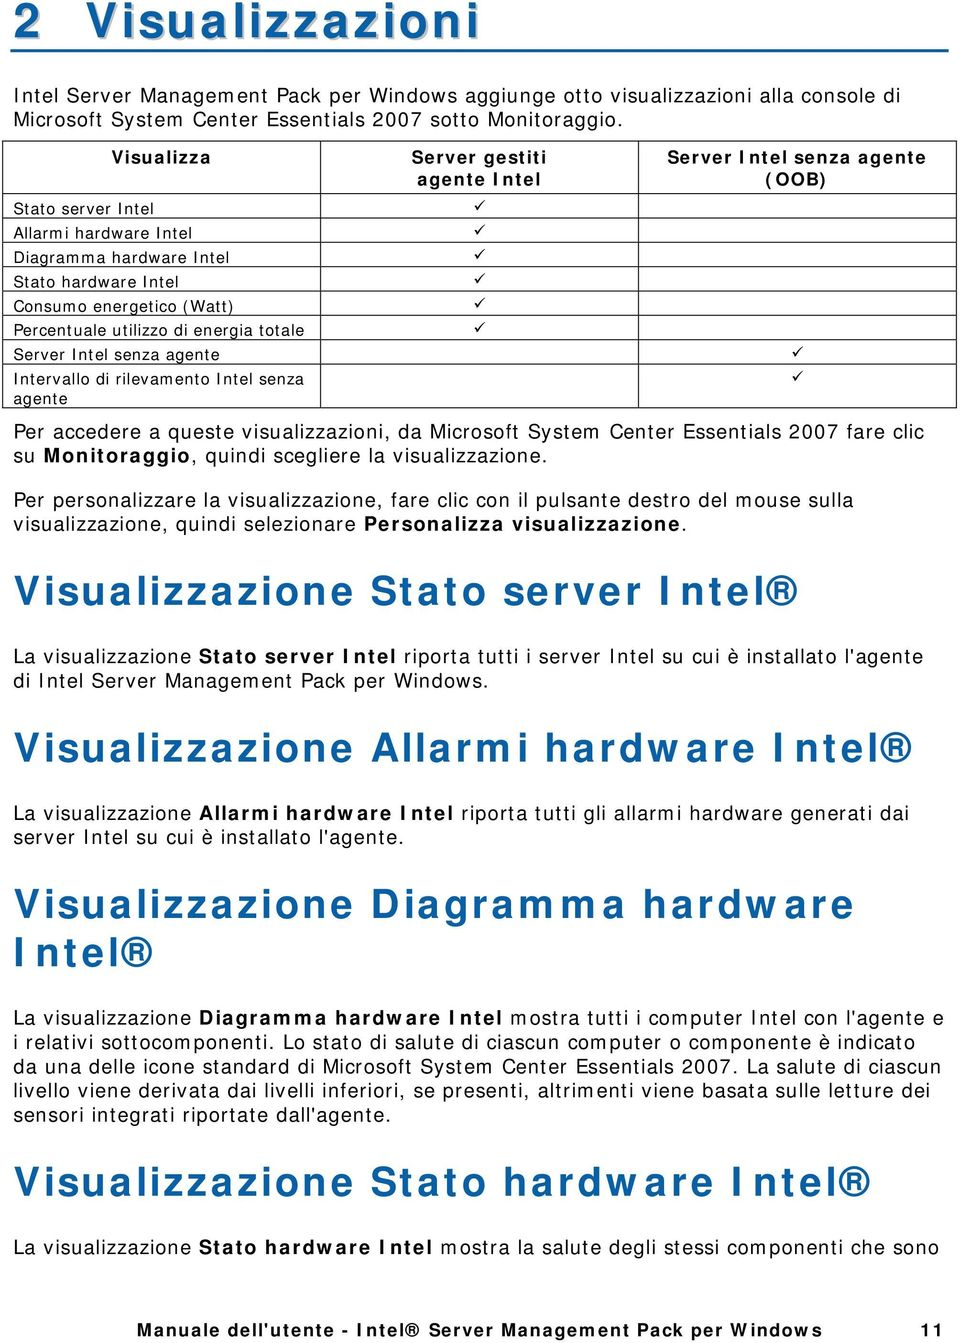 Intervallo di rilevamento Intel senza agente Server gestiti agente Intel Server Intel senza agente (OOB) Per accedere a queste visualizzazioni, da Microsoft System Center Essentials 2007 fare clic su